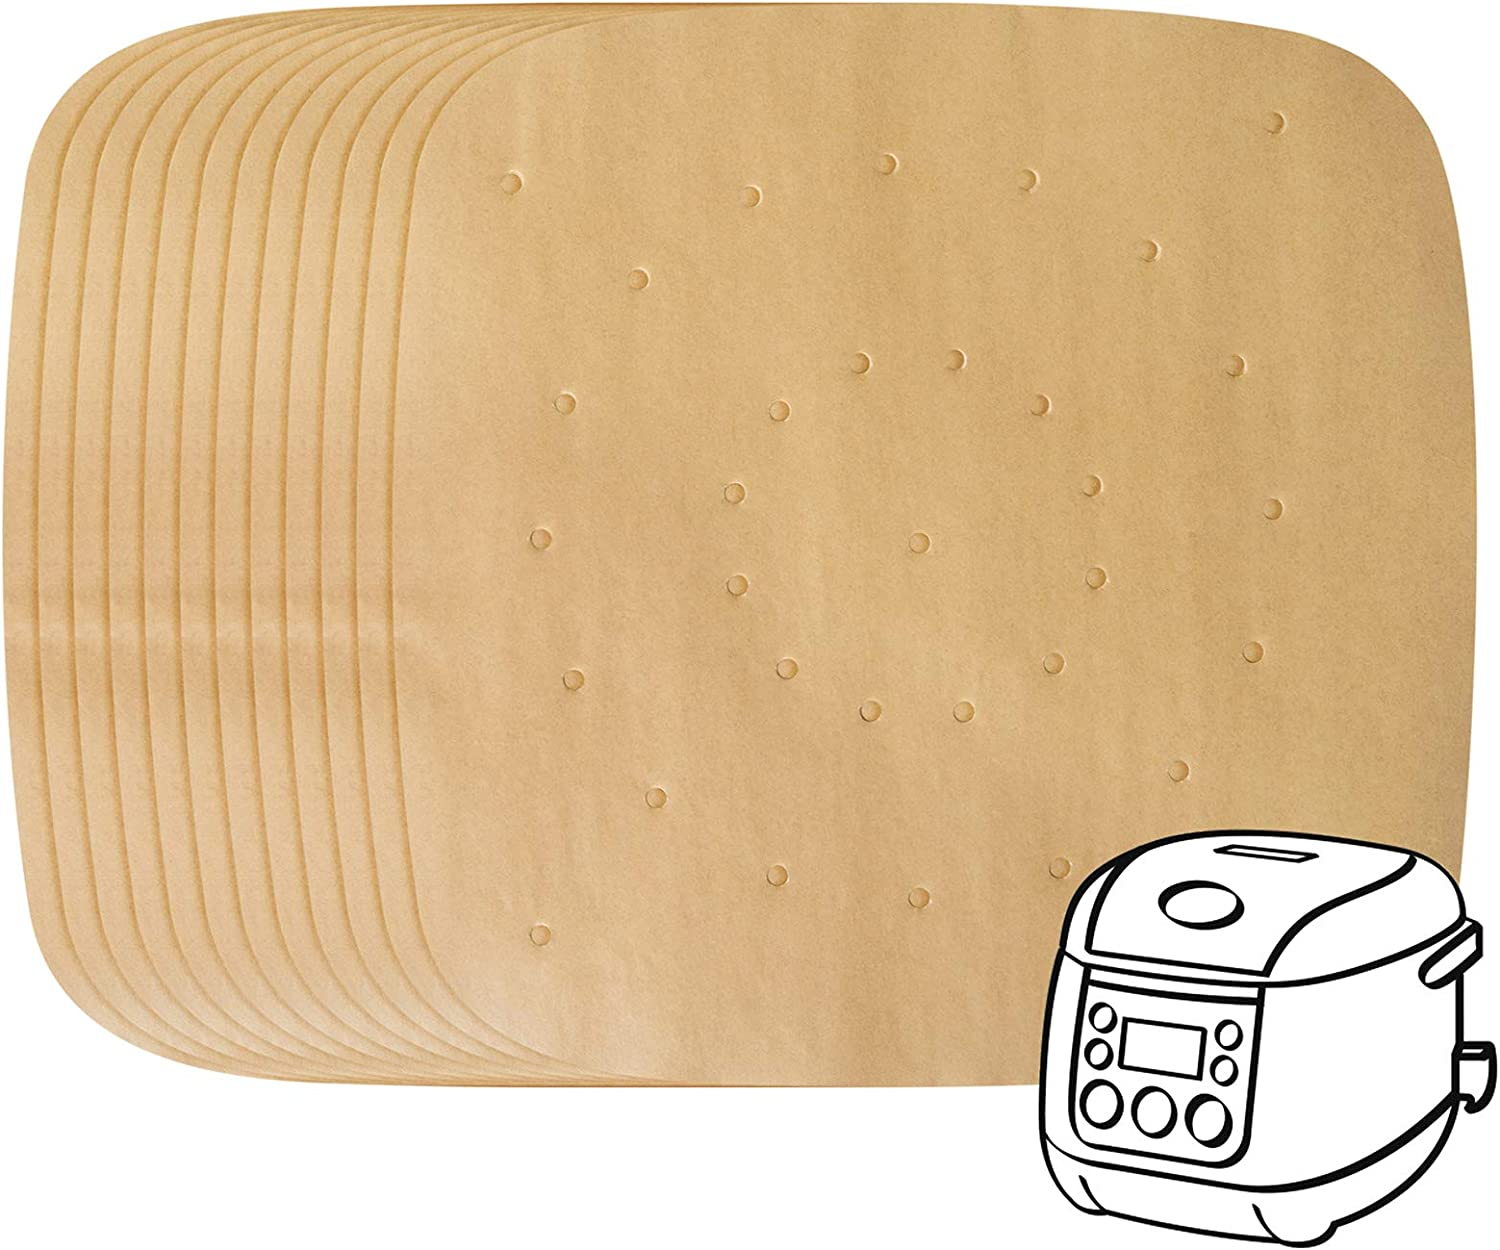 200 Pack Air Fryer Parchment Paper - 8.5 Inches Square Air Fryer Liners Steaming Parchment Liner Perforated Parchment for Air Fryer Streamer Pans Dumplings Fish and Dim Sum